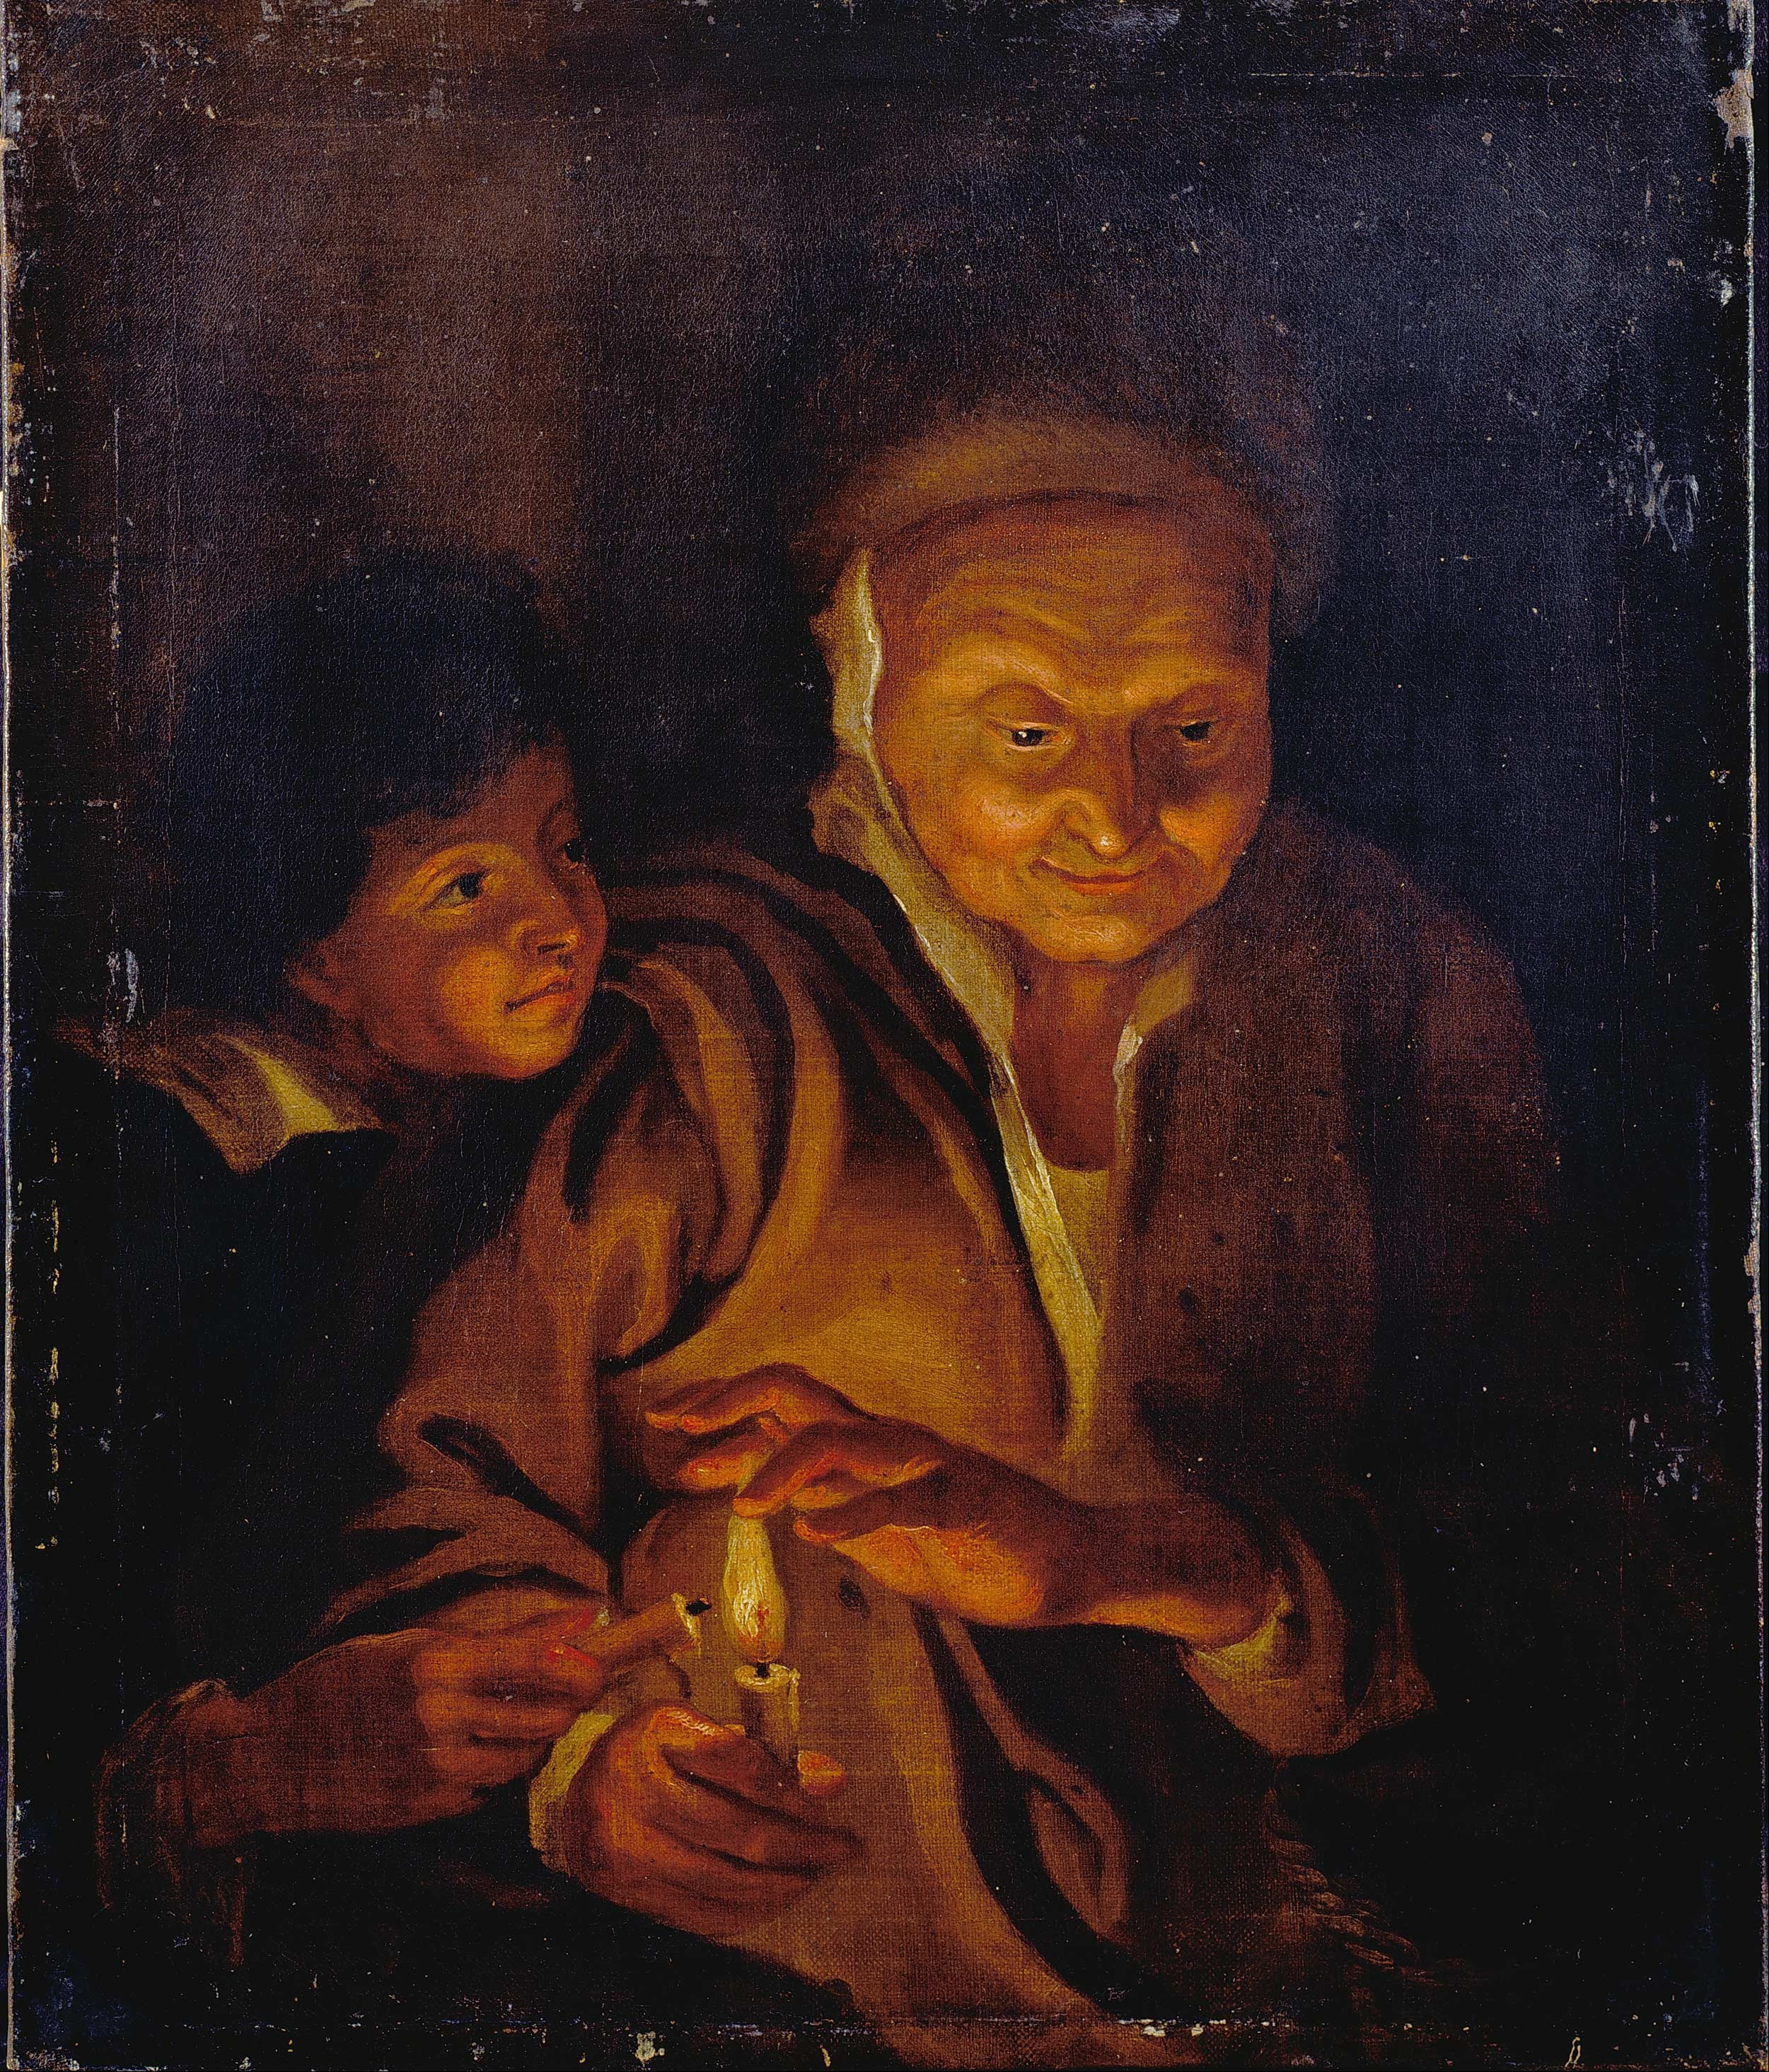 File:Rubens, Sir Peter Paul - A Boy lighting a Candle from one